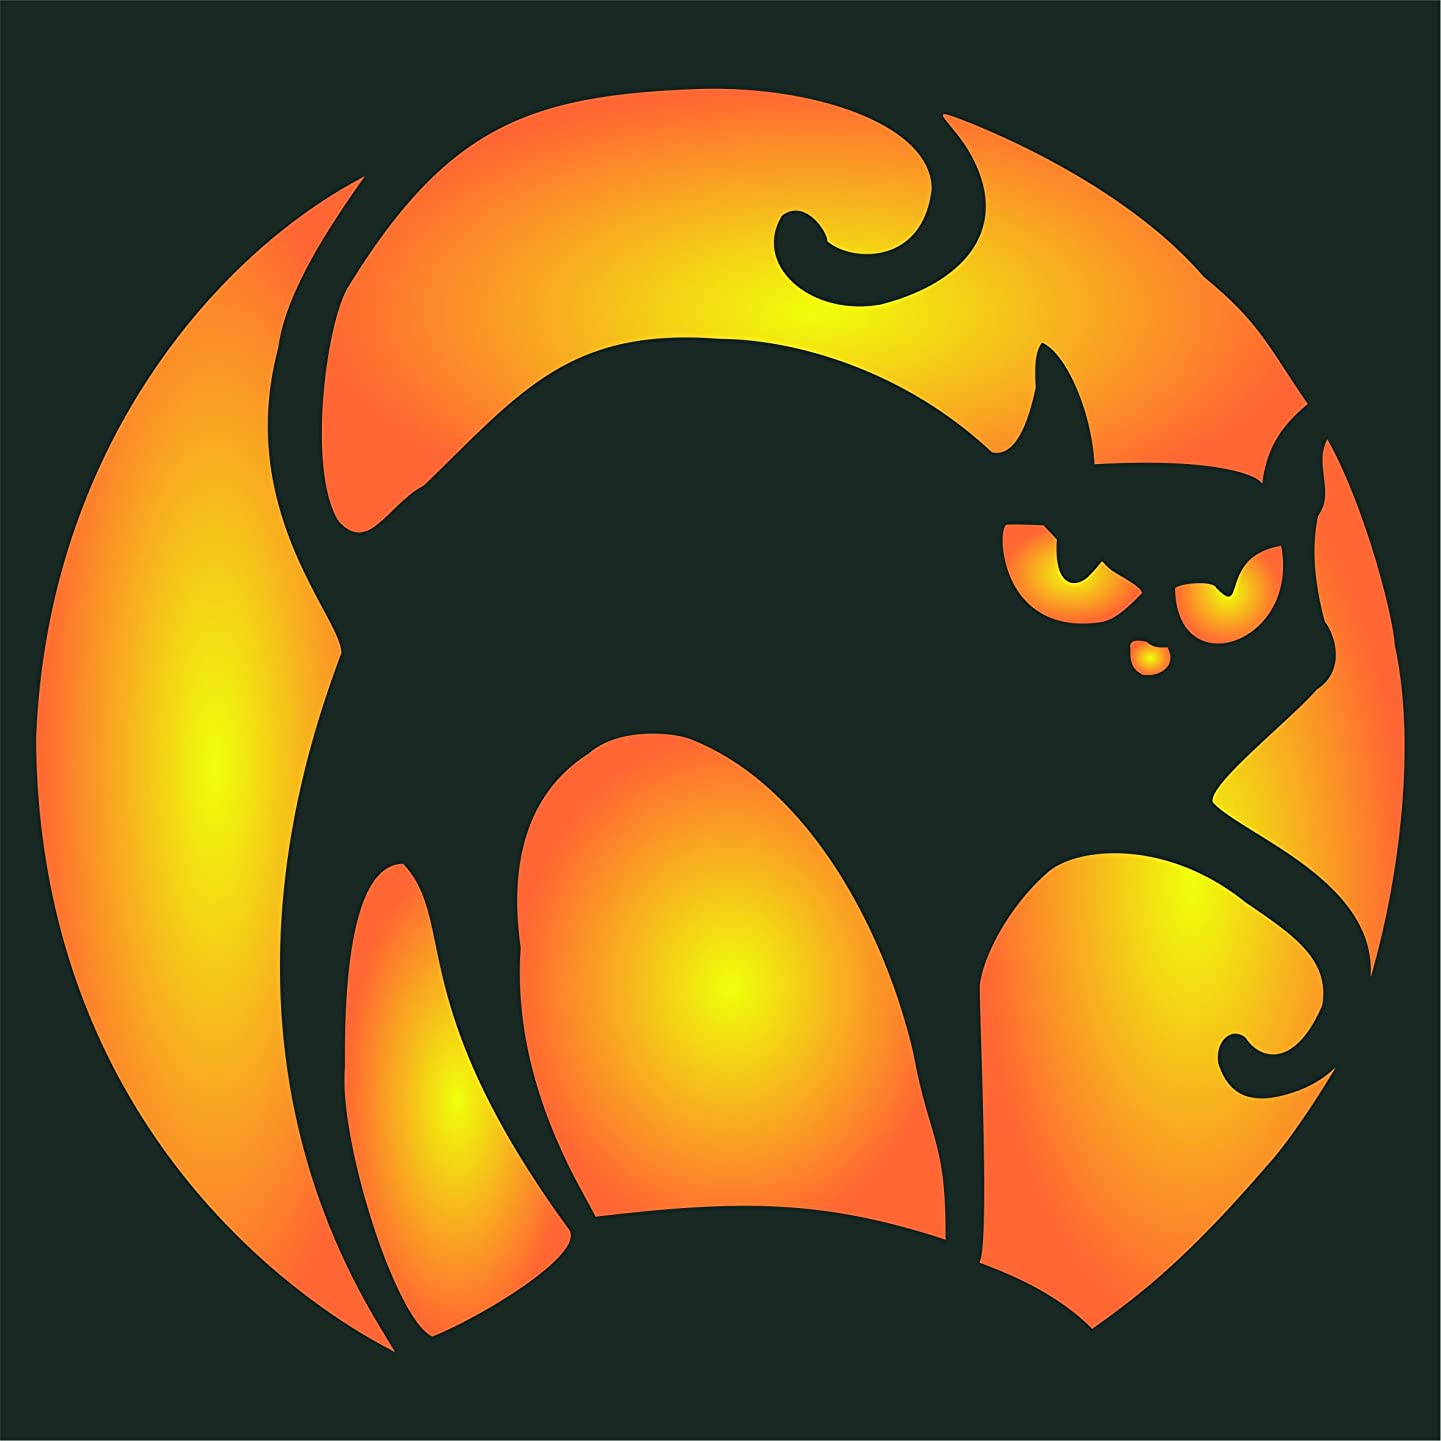 """Halloween Cat Stencil - (size 6.5""""w x 6""""h) Reusable Wall Stencils for Painting - Best Quality Decor Ideas - Use on Walls, Floors, Fabrics, Glass, Wood, and More…"""